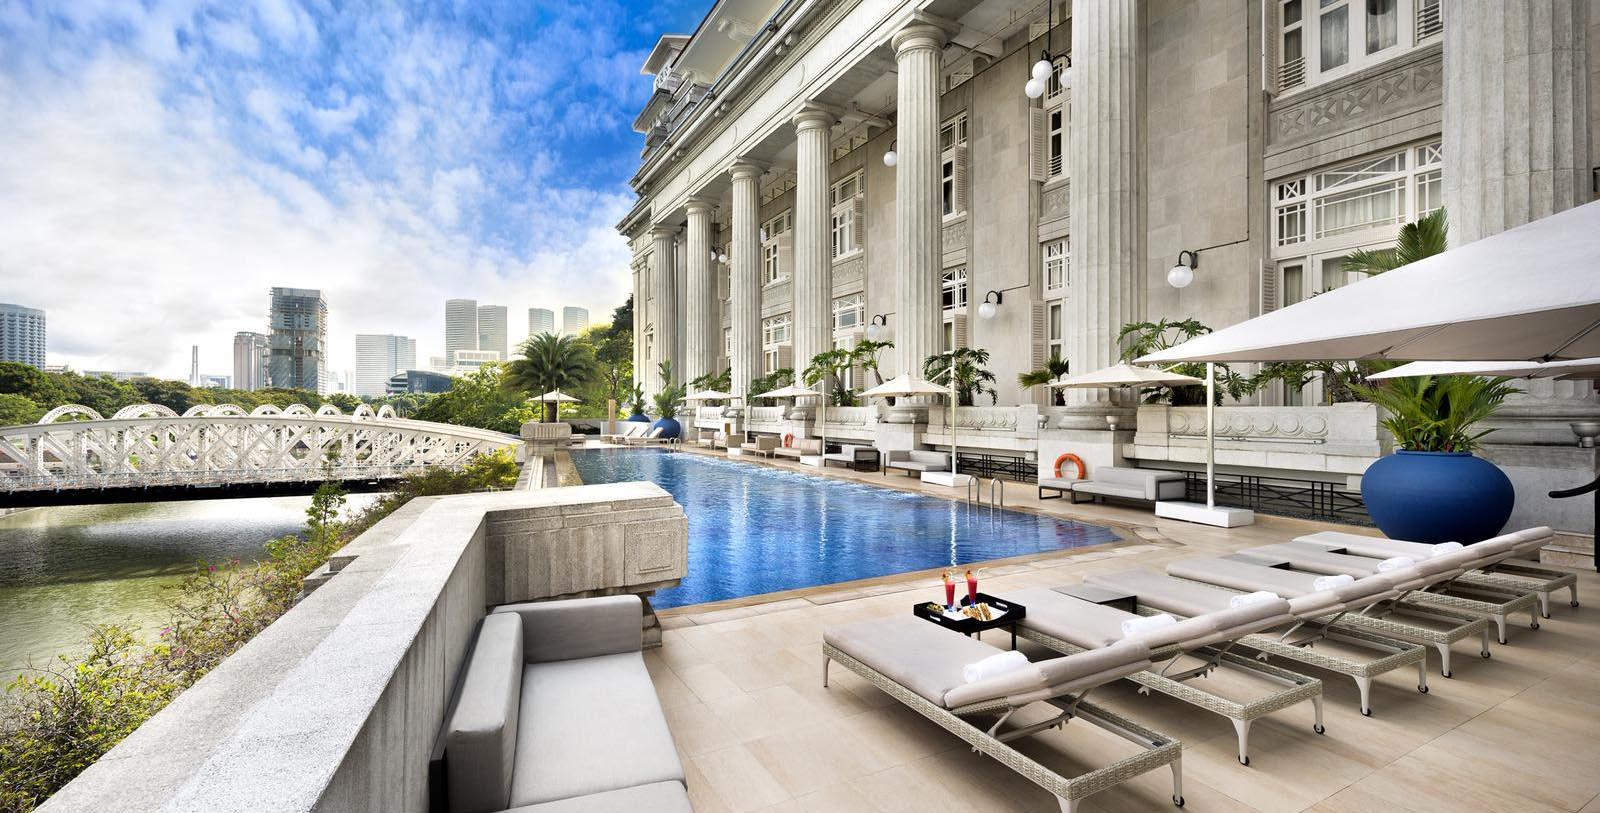 Image of Pool Terrace at The Fullerton Hotel Singapore, 1924, Member of Historic Hotels Worldwide, in Singapore, Hot Deals